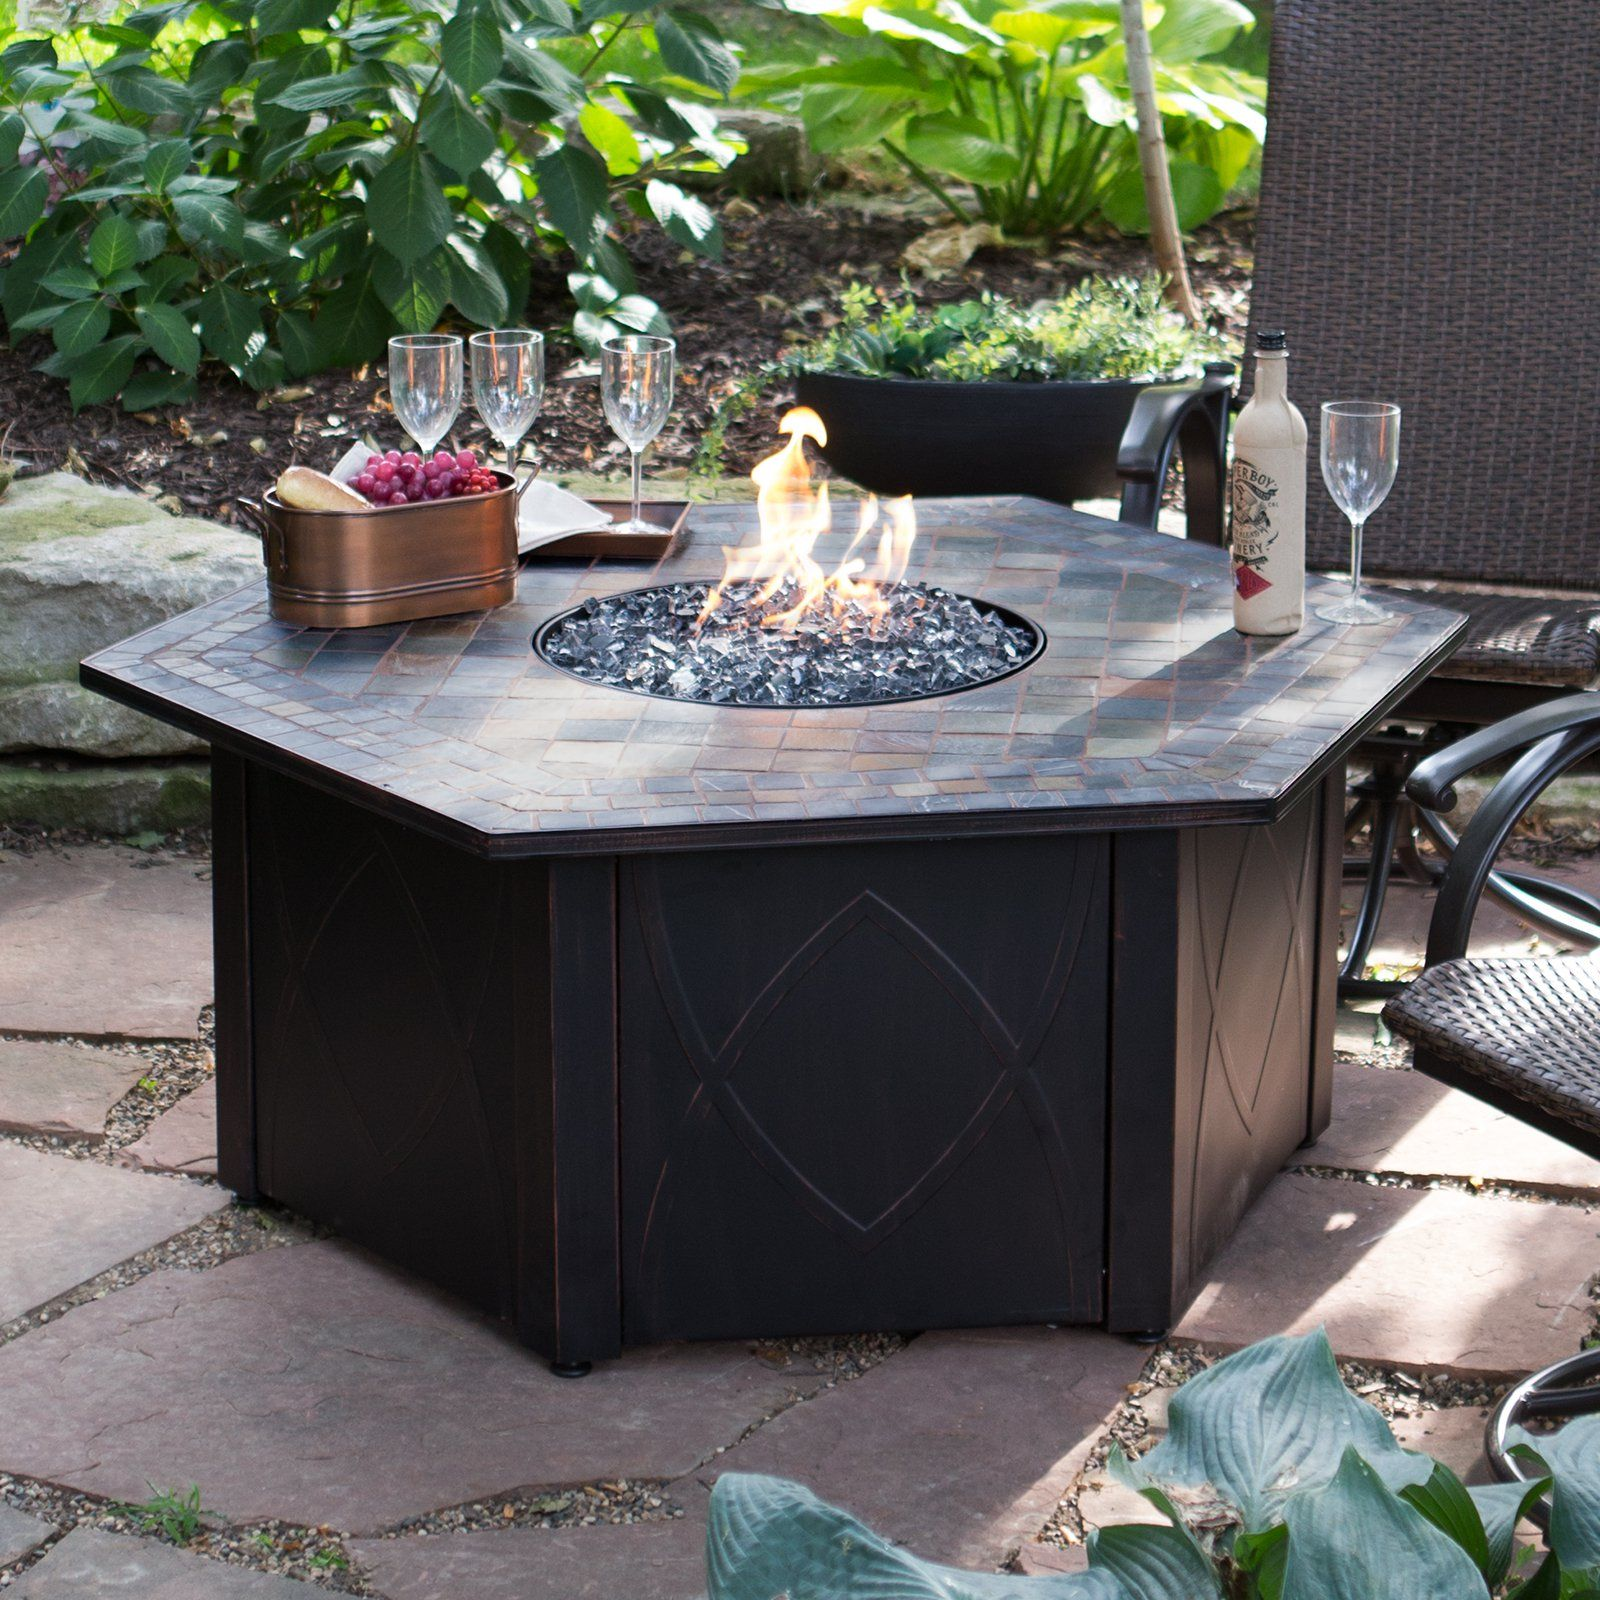 Decorative Patio Tiles Gorgeous Uniflame 55Indecorative Slate Tile Lp Gas Outdoor Fire Pit With Decorating Inspiration